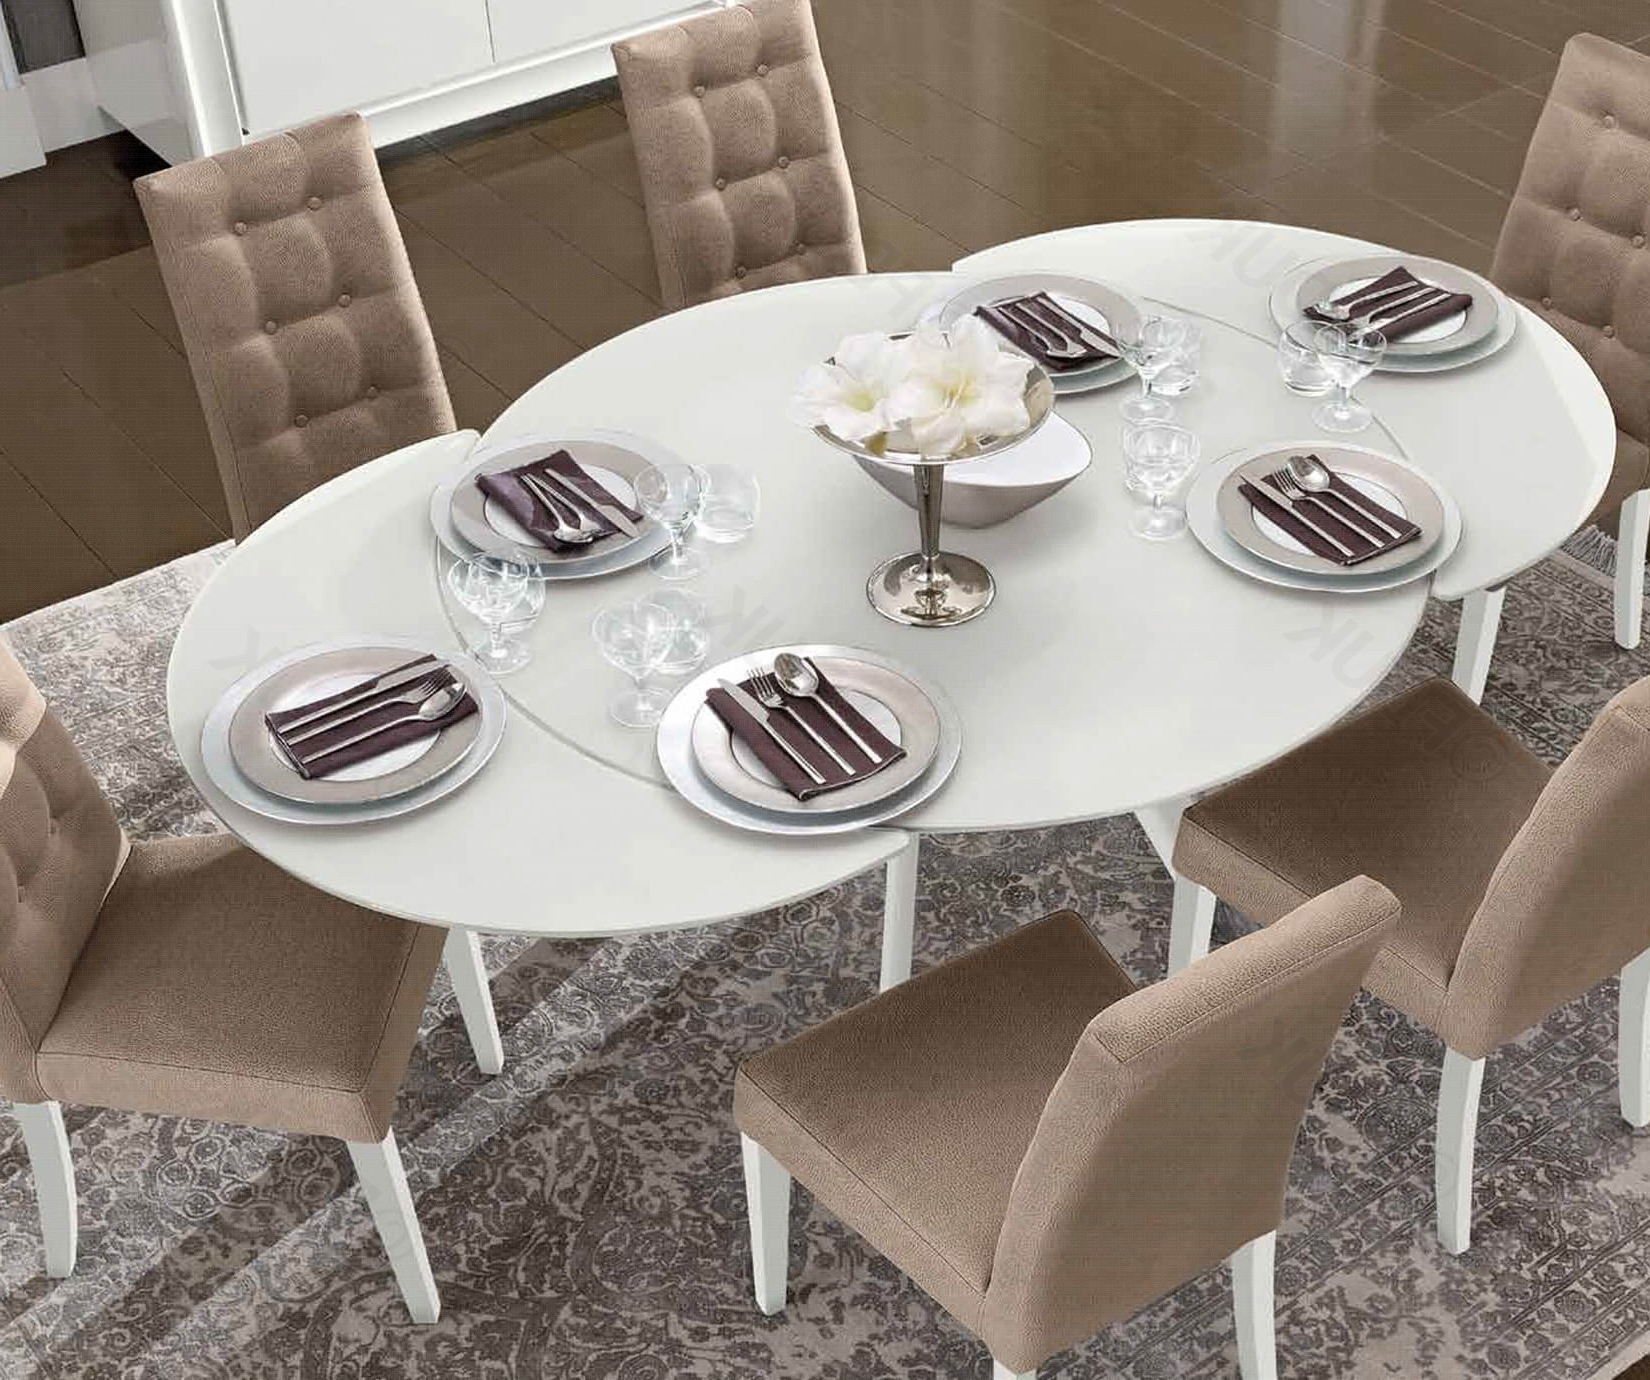 Dama Bianca White High Gloss Round Intended For Round Extending Dining Tables Sets (Gallery 1 of 25)